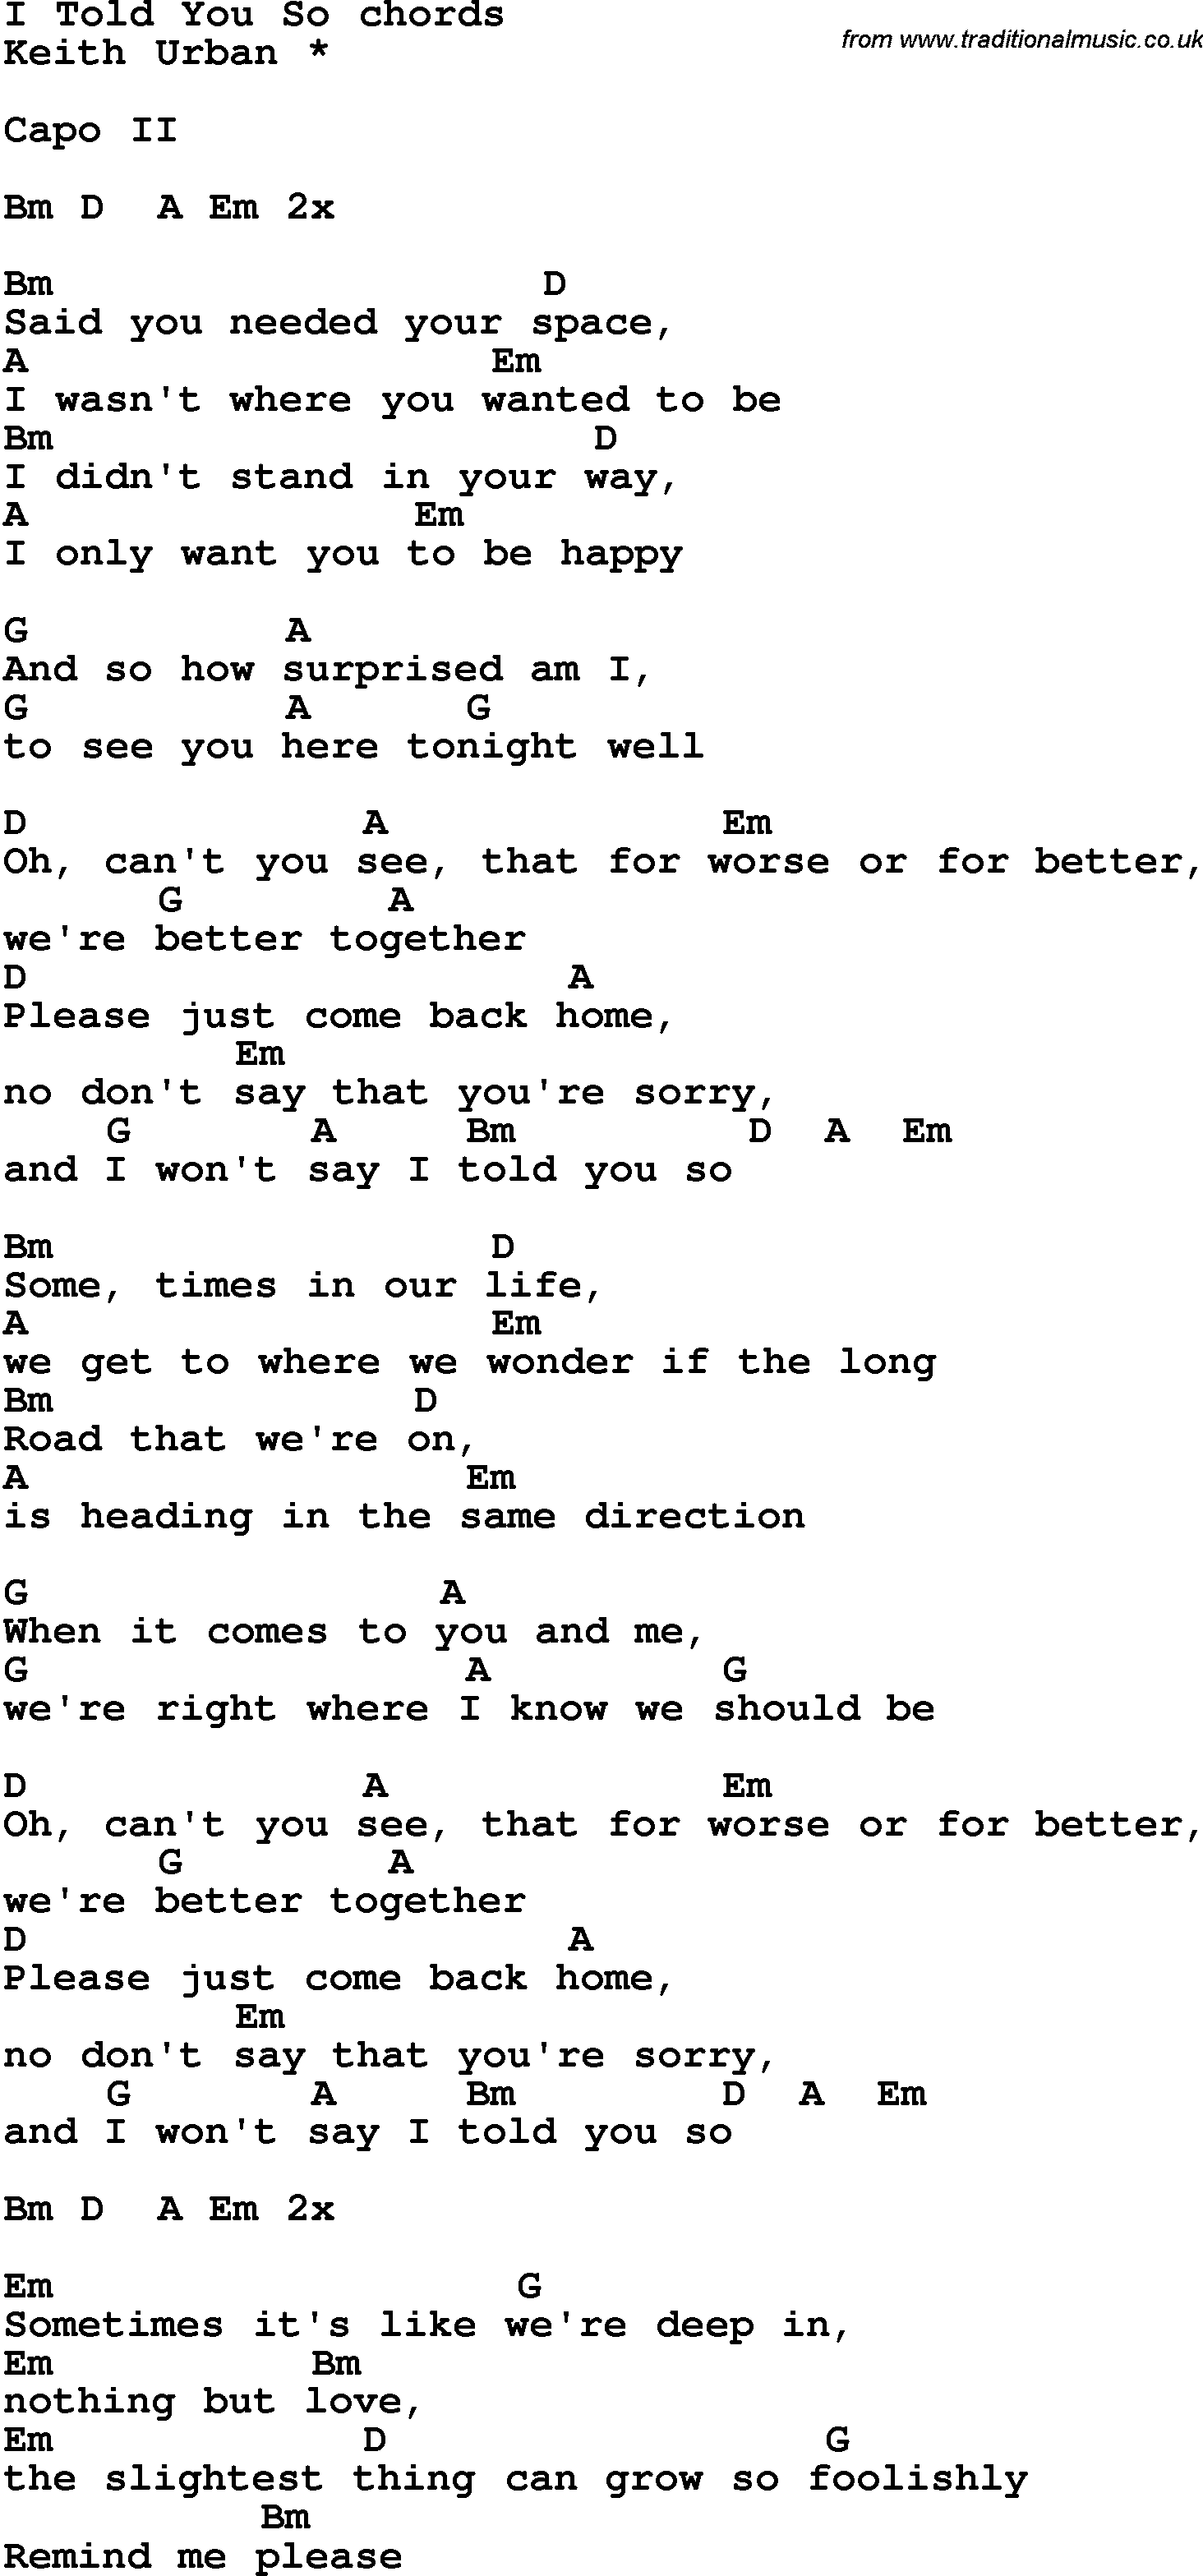 Song Lyrics With Guitar Chords For I Told You So